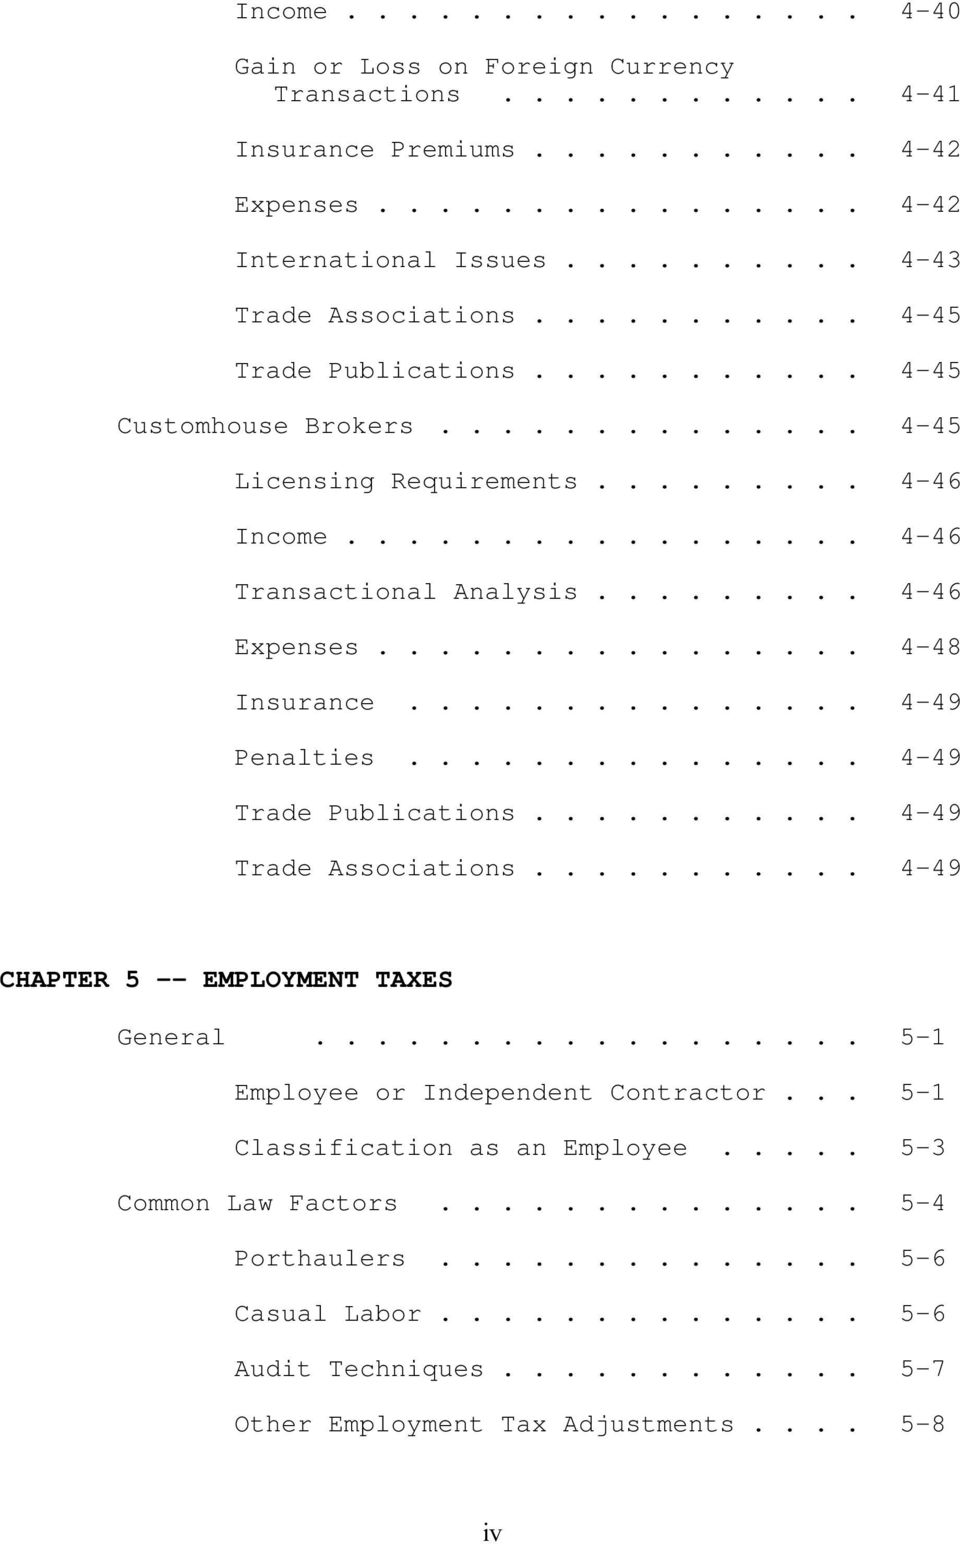 .. 4-49 Penalties... 4-49 Trade Publications... 4-49 Trade Associations... 4-49 CHAPTER 5 -- EMPLOYMENT TAXES General... 5-1 Employee or Independent Contractor.